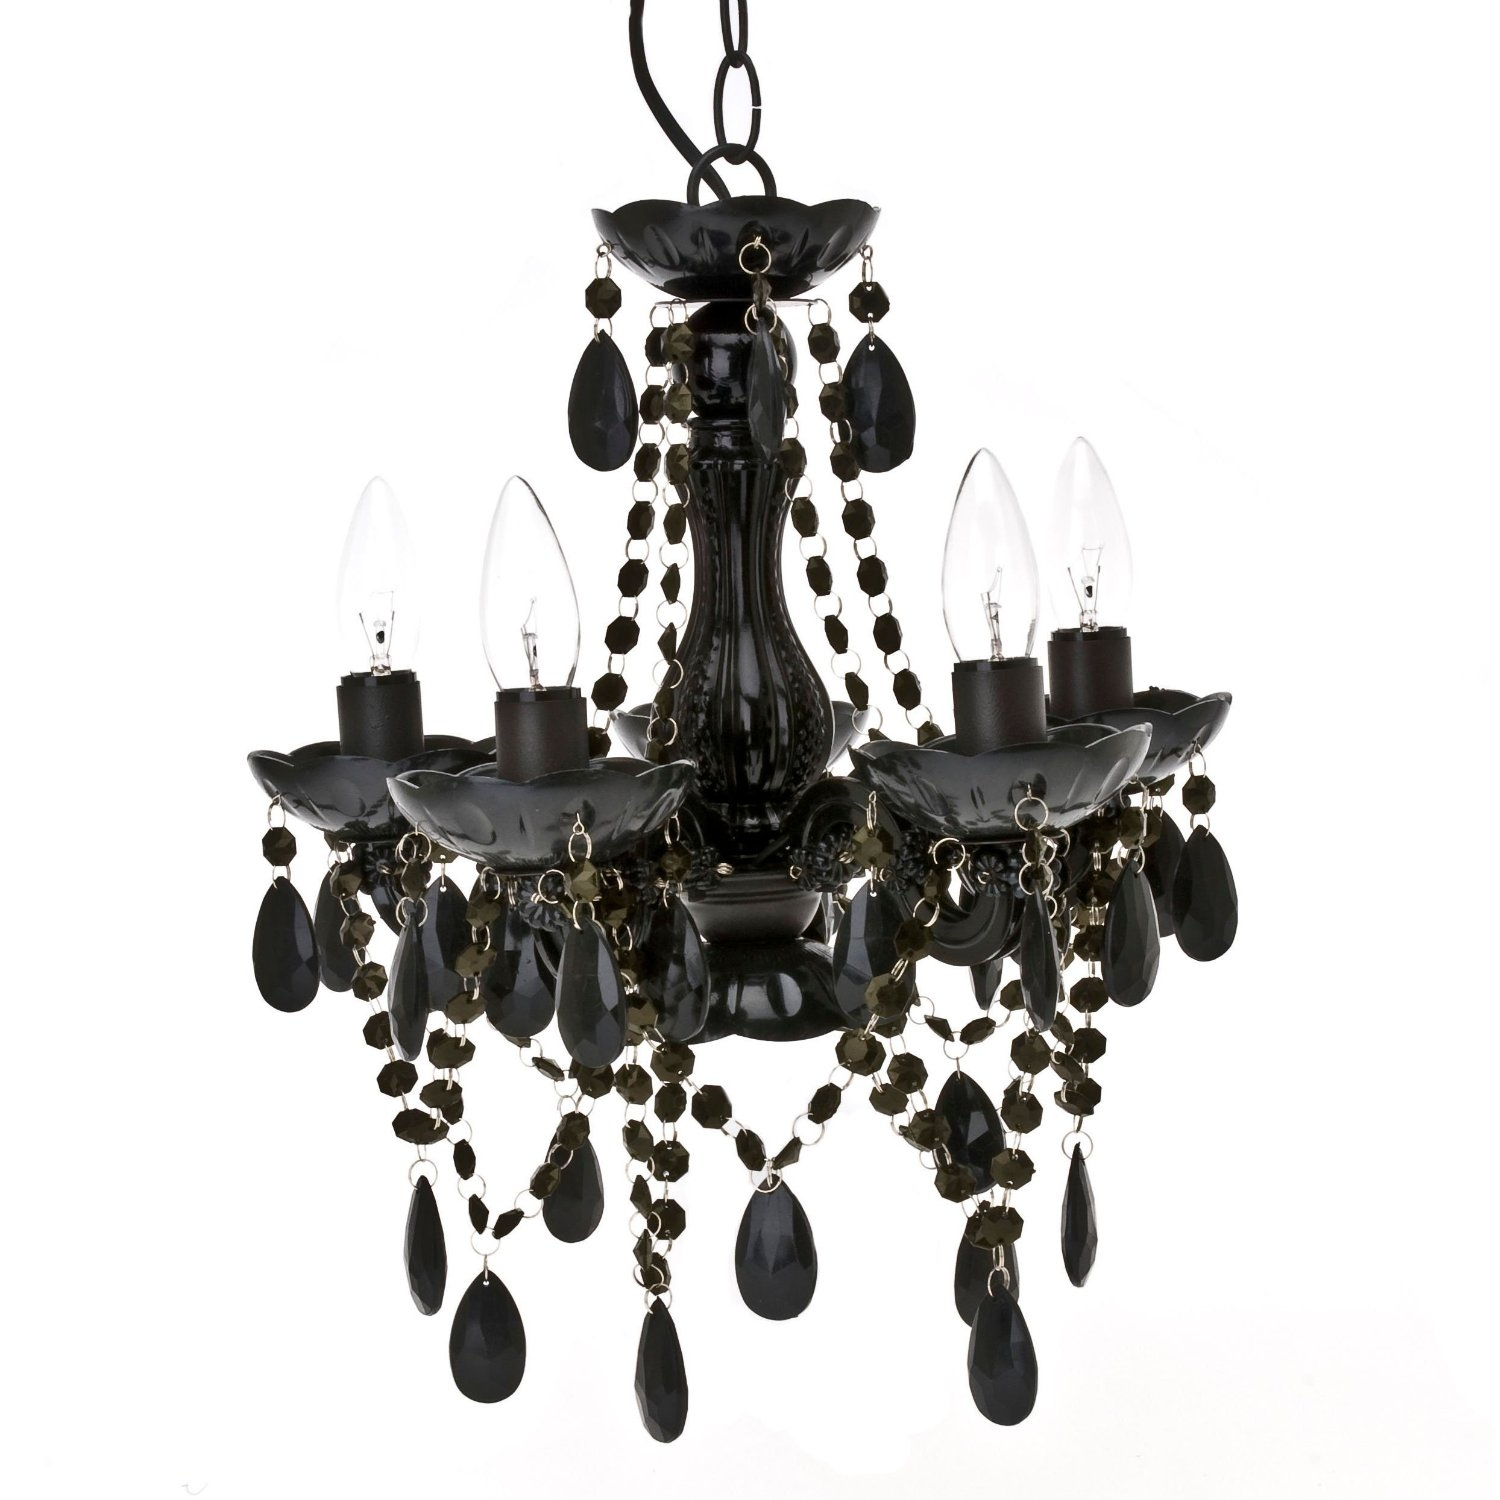 Black Chandeliers For Every Home Designinyou With Black Chandeliers (#5 of 12)